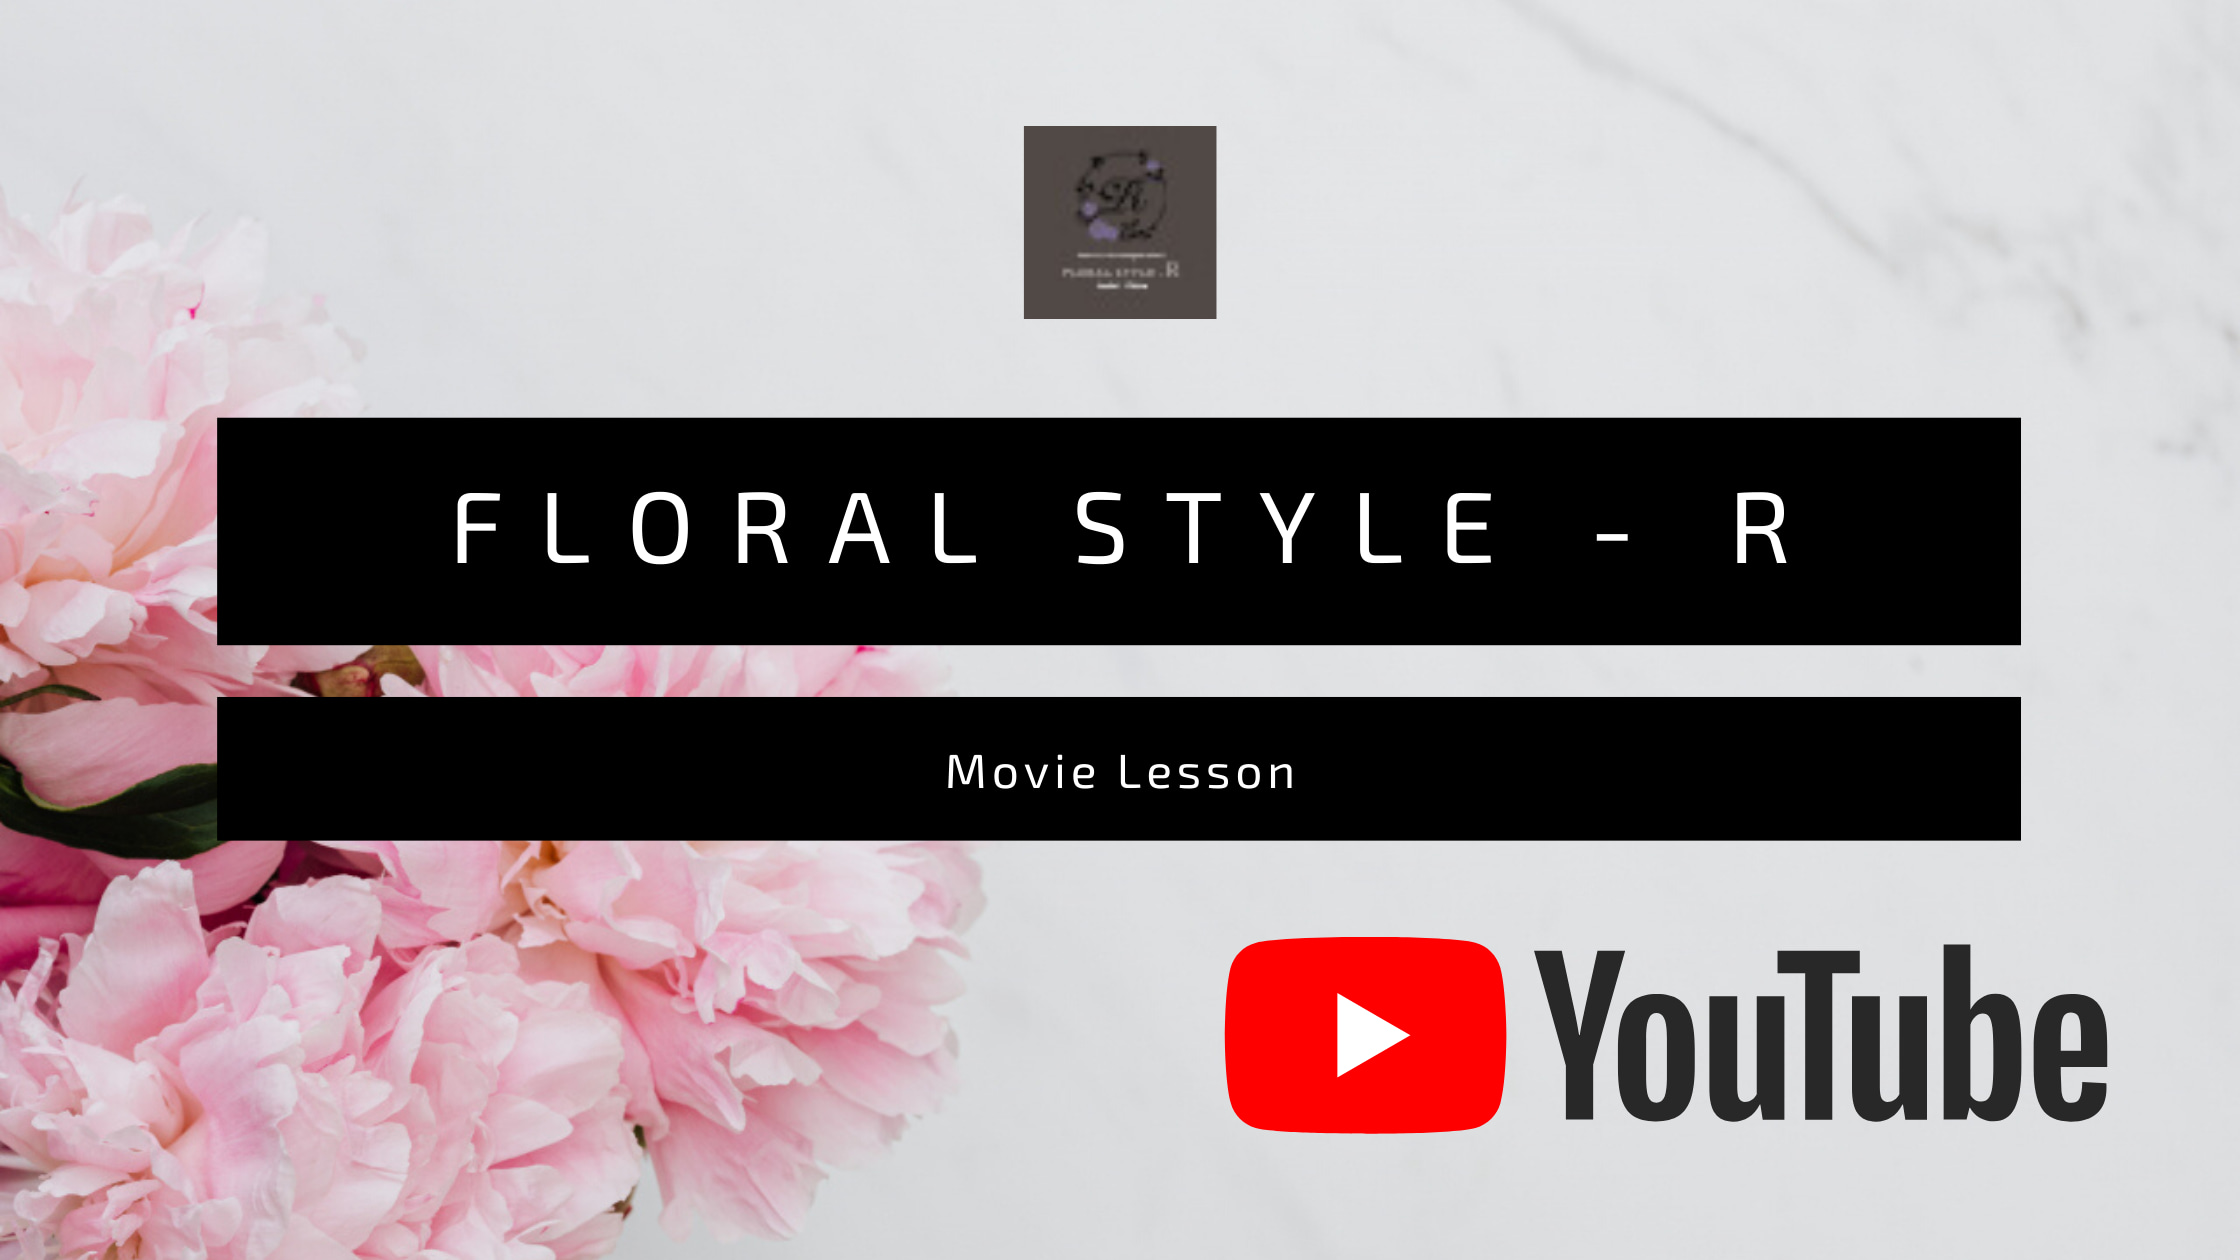 FLORAL STYLE - R You Tube